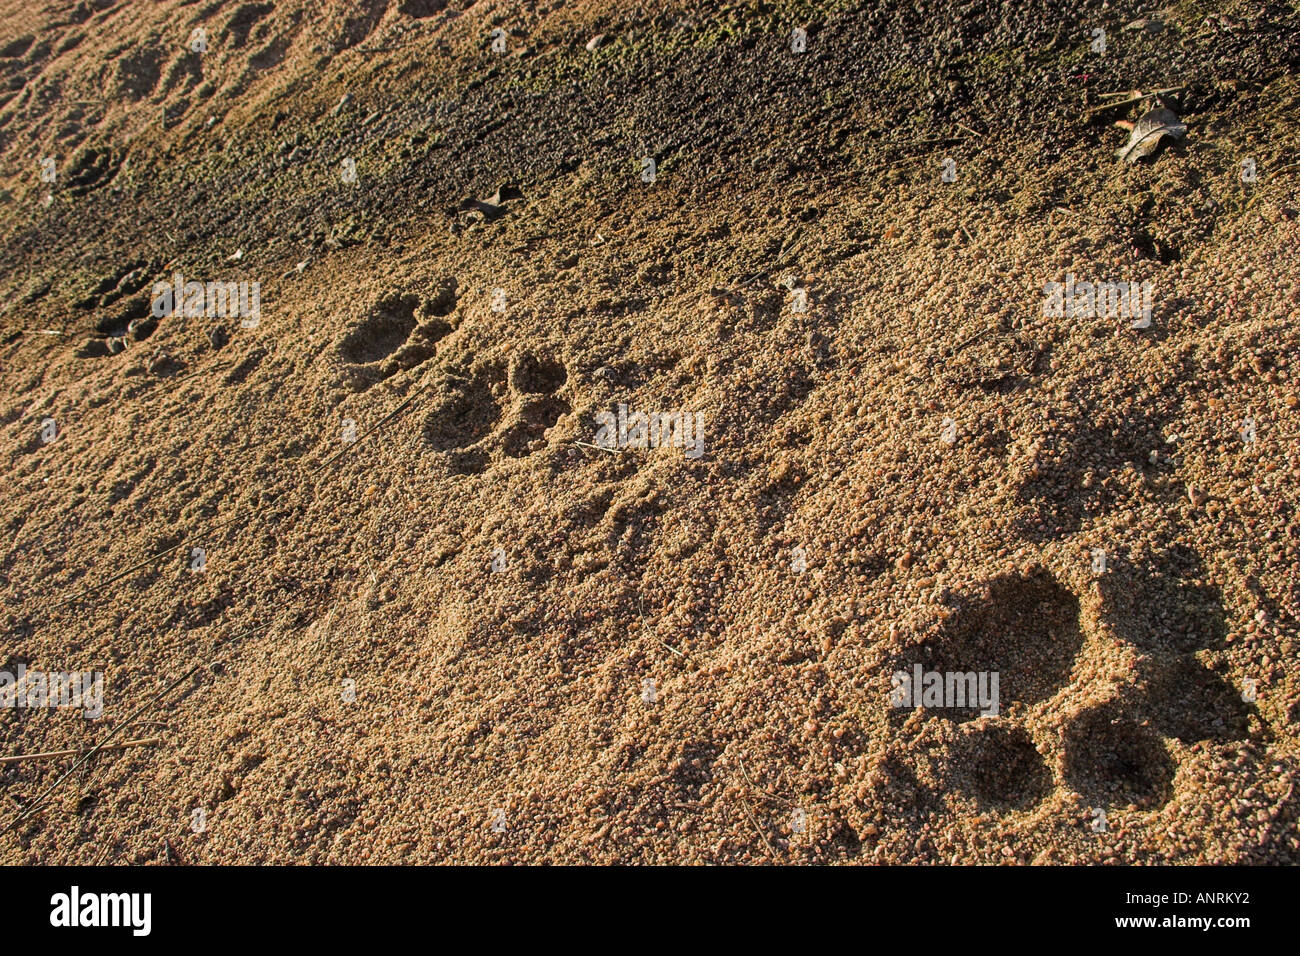 fresh lion paw prints show up clearly in the soft sand of a dry